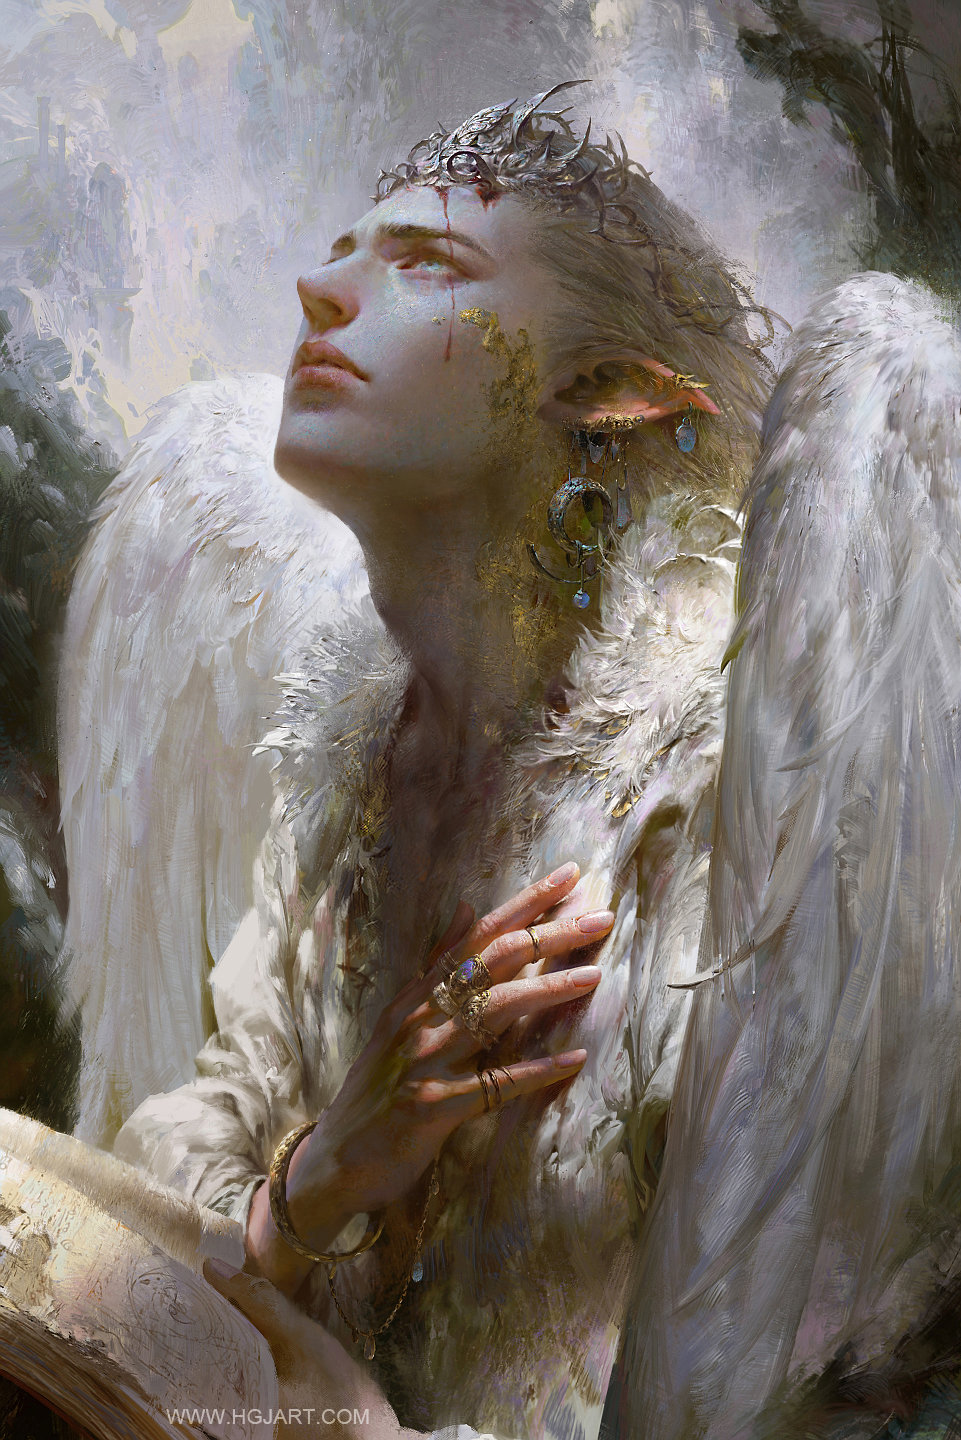 guangjian huang digital painting Angel